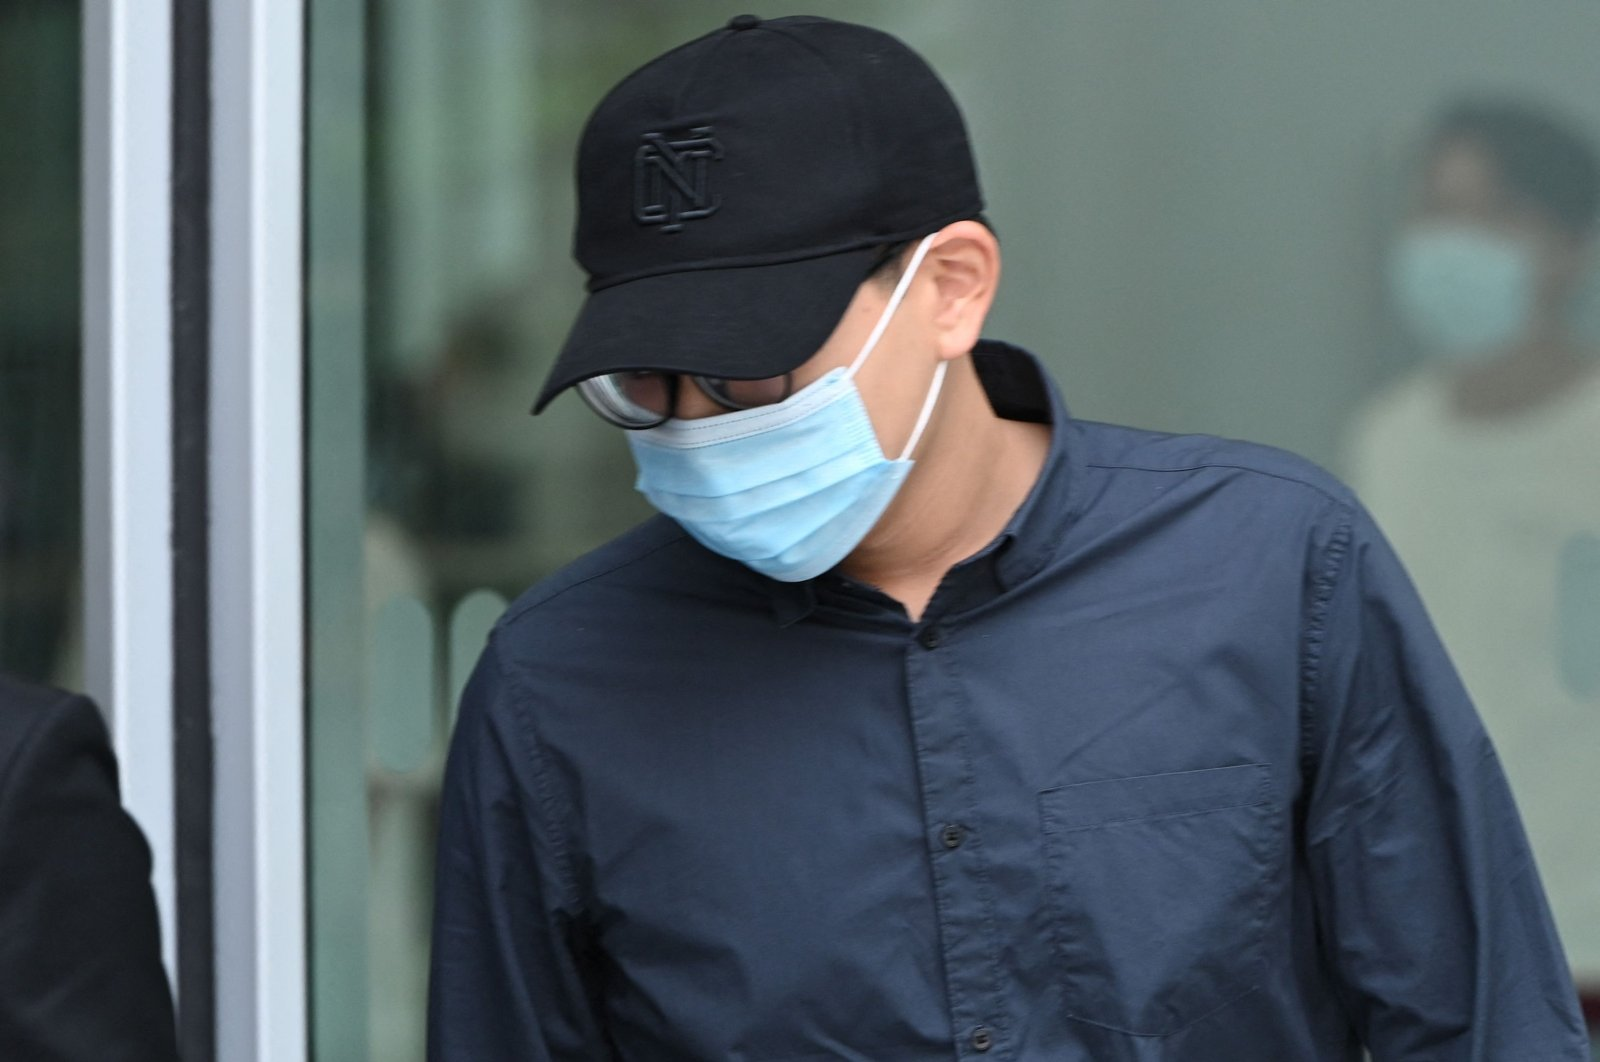 Derek Ng De Ren leaves the state court in Singapore after being sentenced to nine months probation and 40 hours of community service for sending death threats to English Premier League footballer Neal Maupay and his family, July 7, 2021. (AFP Photo)